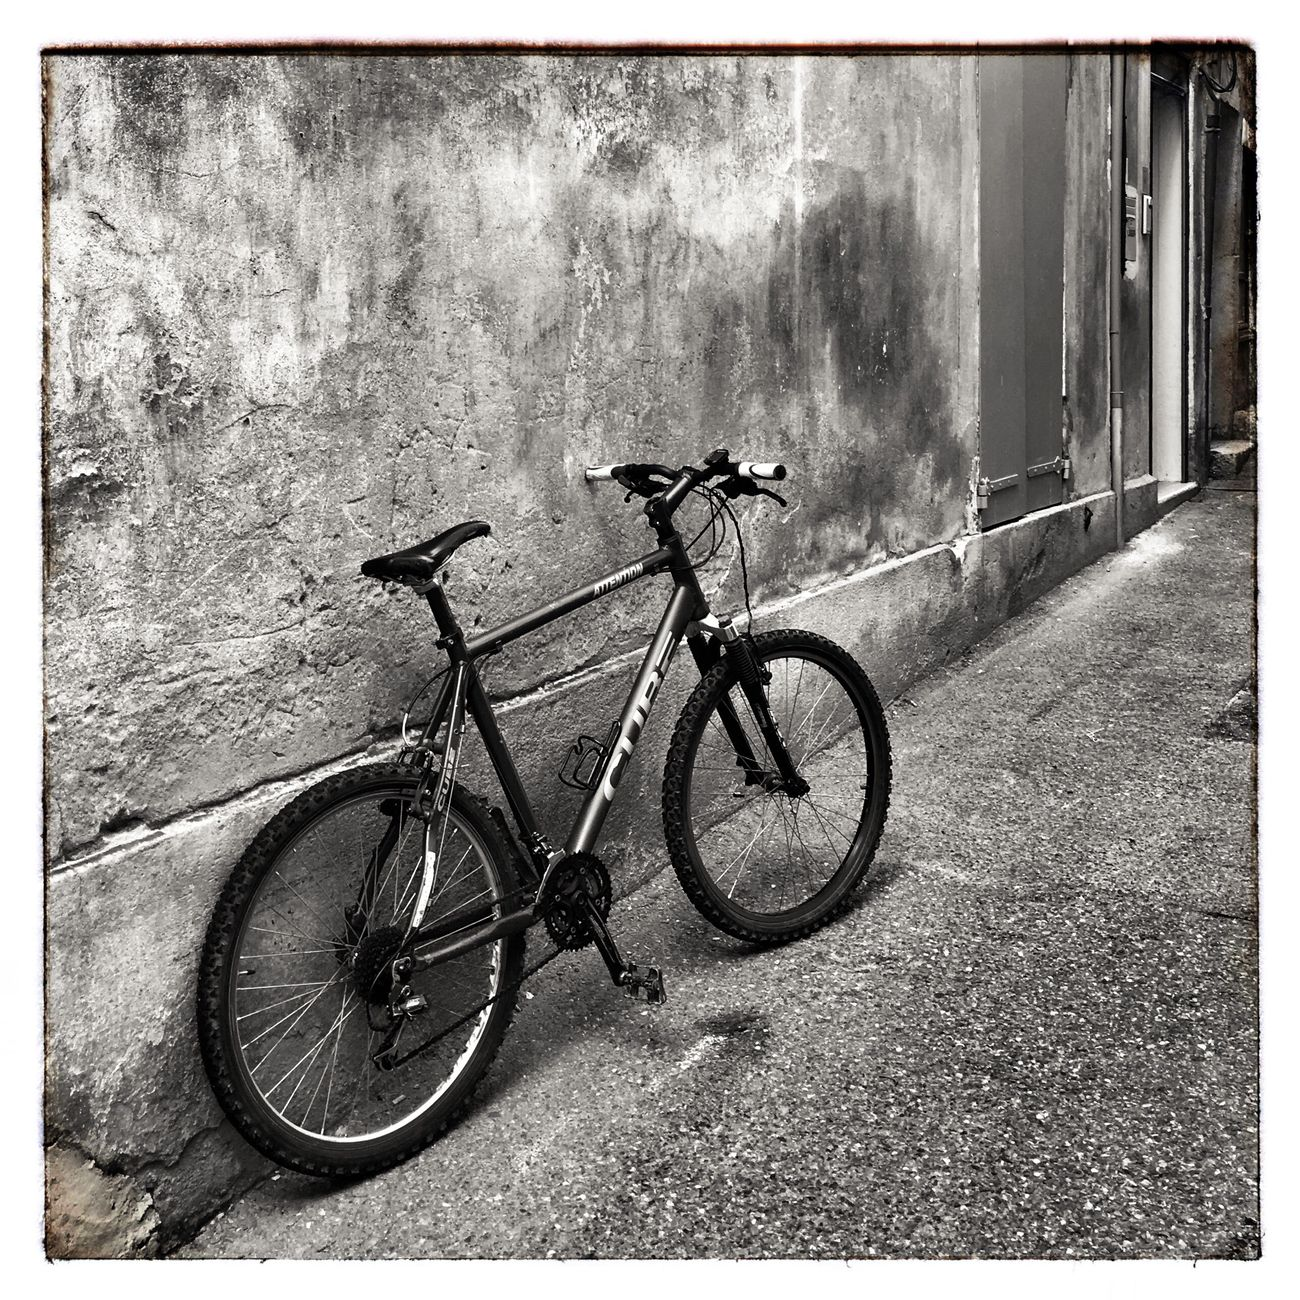 Blackandwhite Blackandwhite Photography Monochrome Monochrome Photography Bicycle Transportation Day Stationary No People Land Vehicle Outdoors